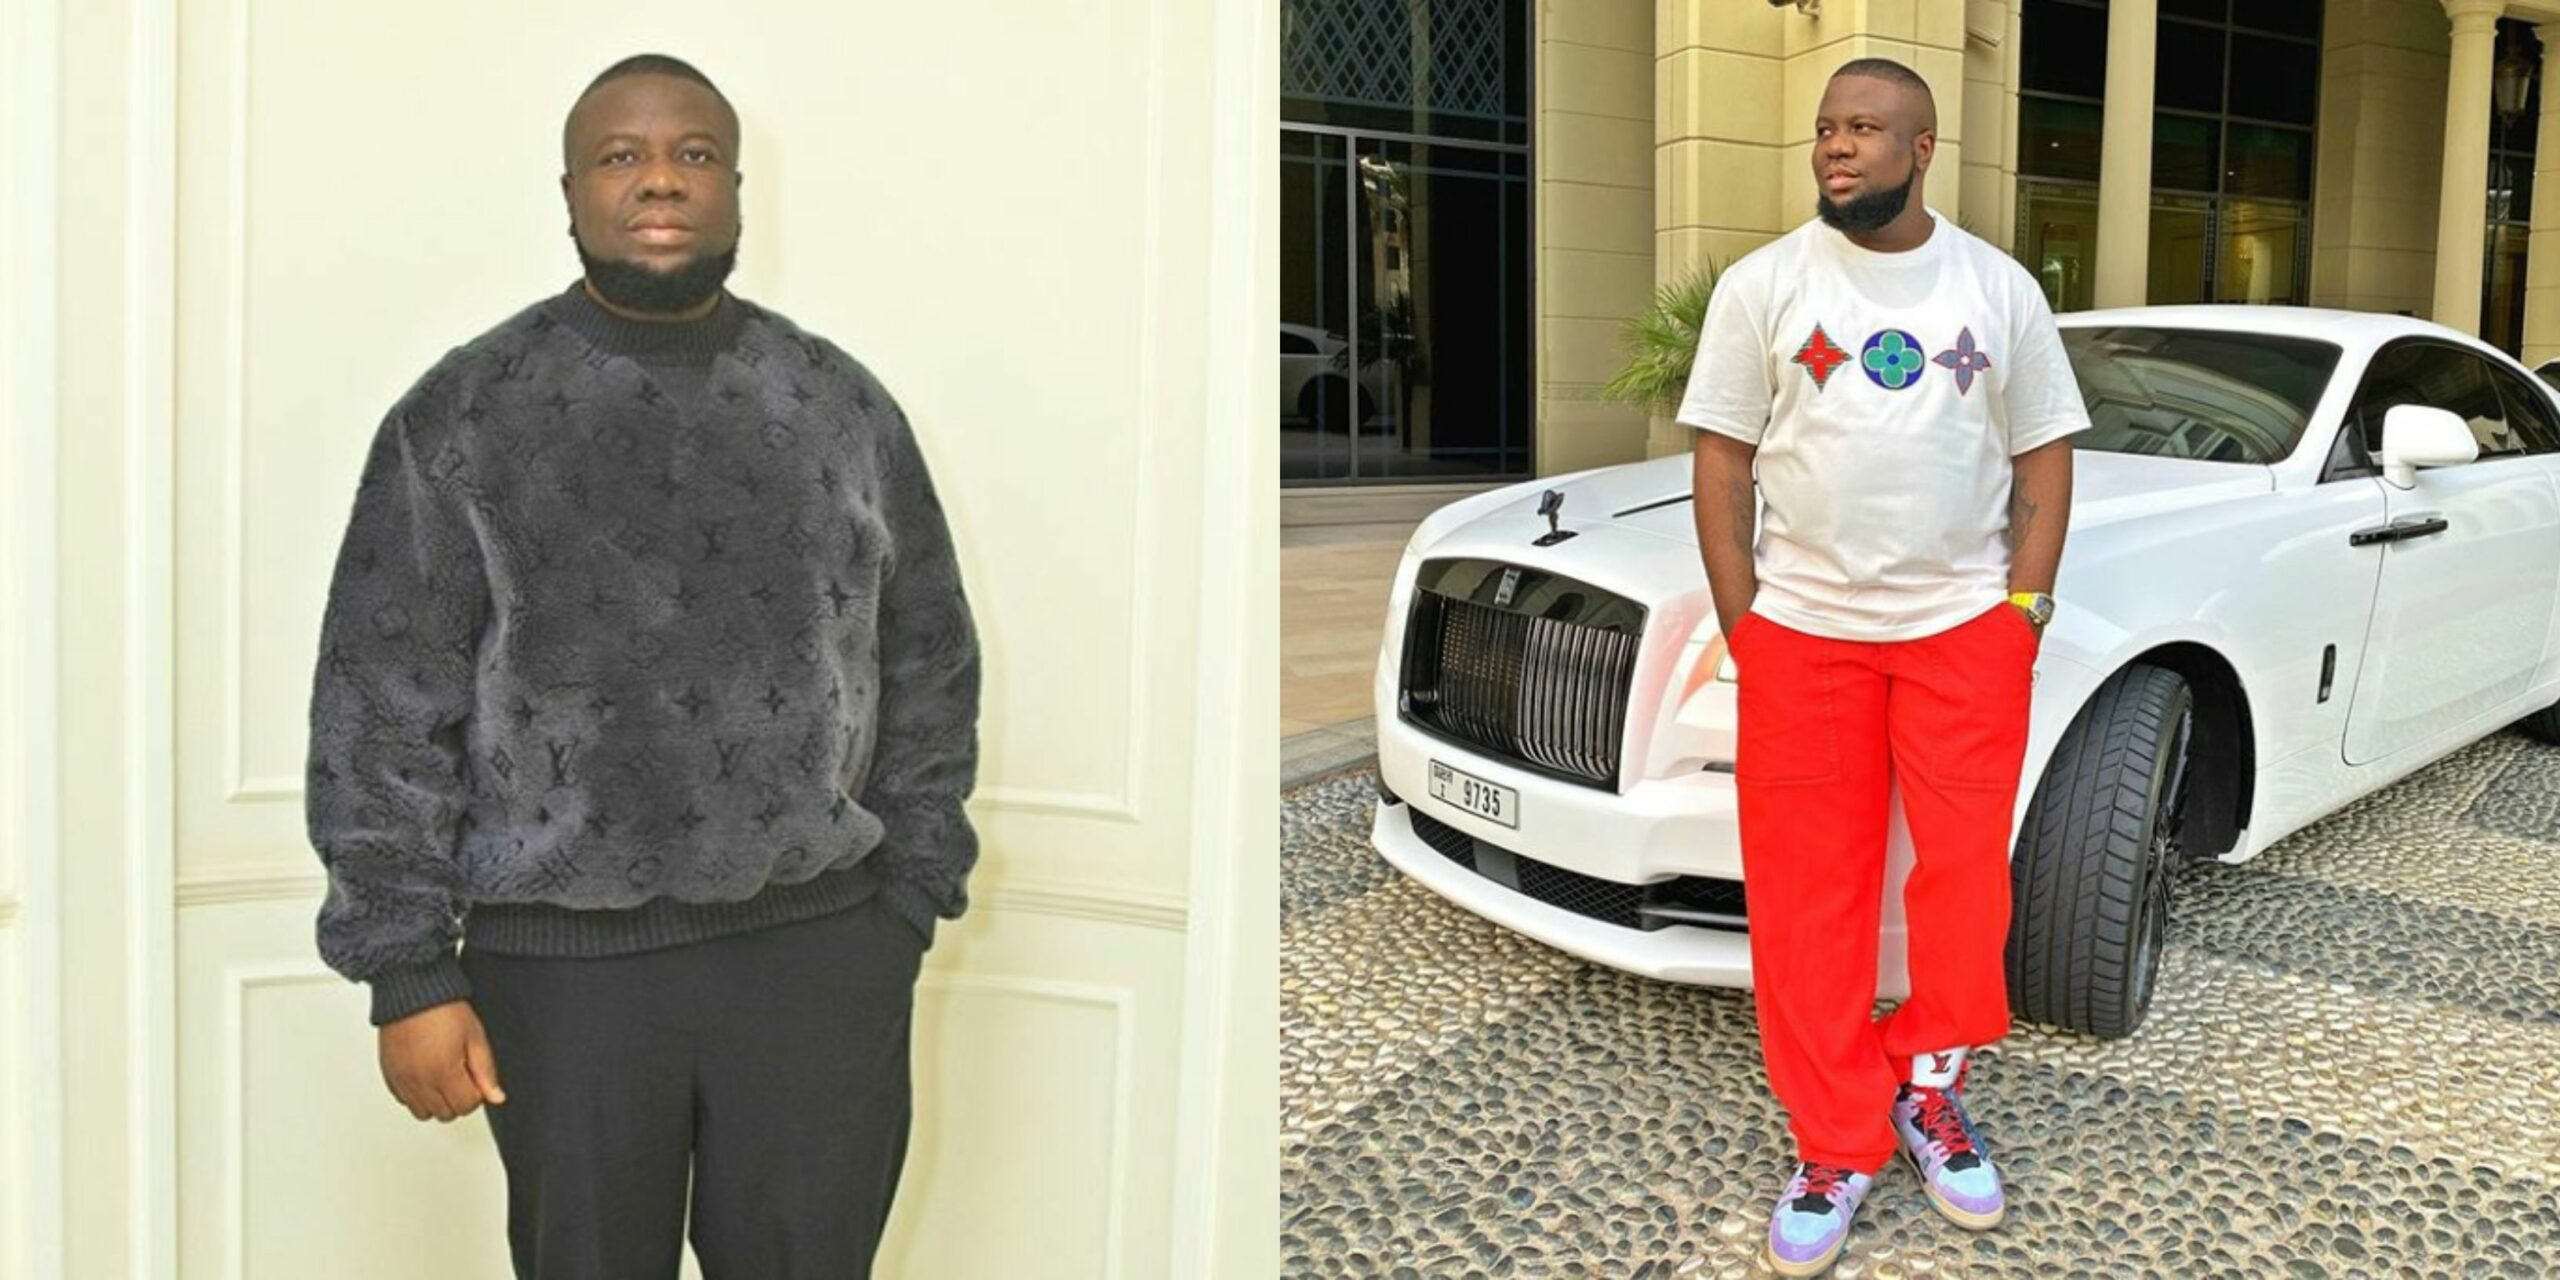 They will give him laptop and Wifi to continue his 'business' in prison - Nigerians react to Hushpuppi's repatriation to Nigeria